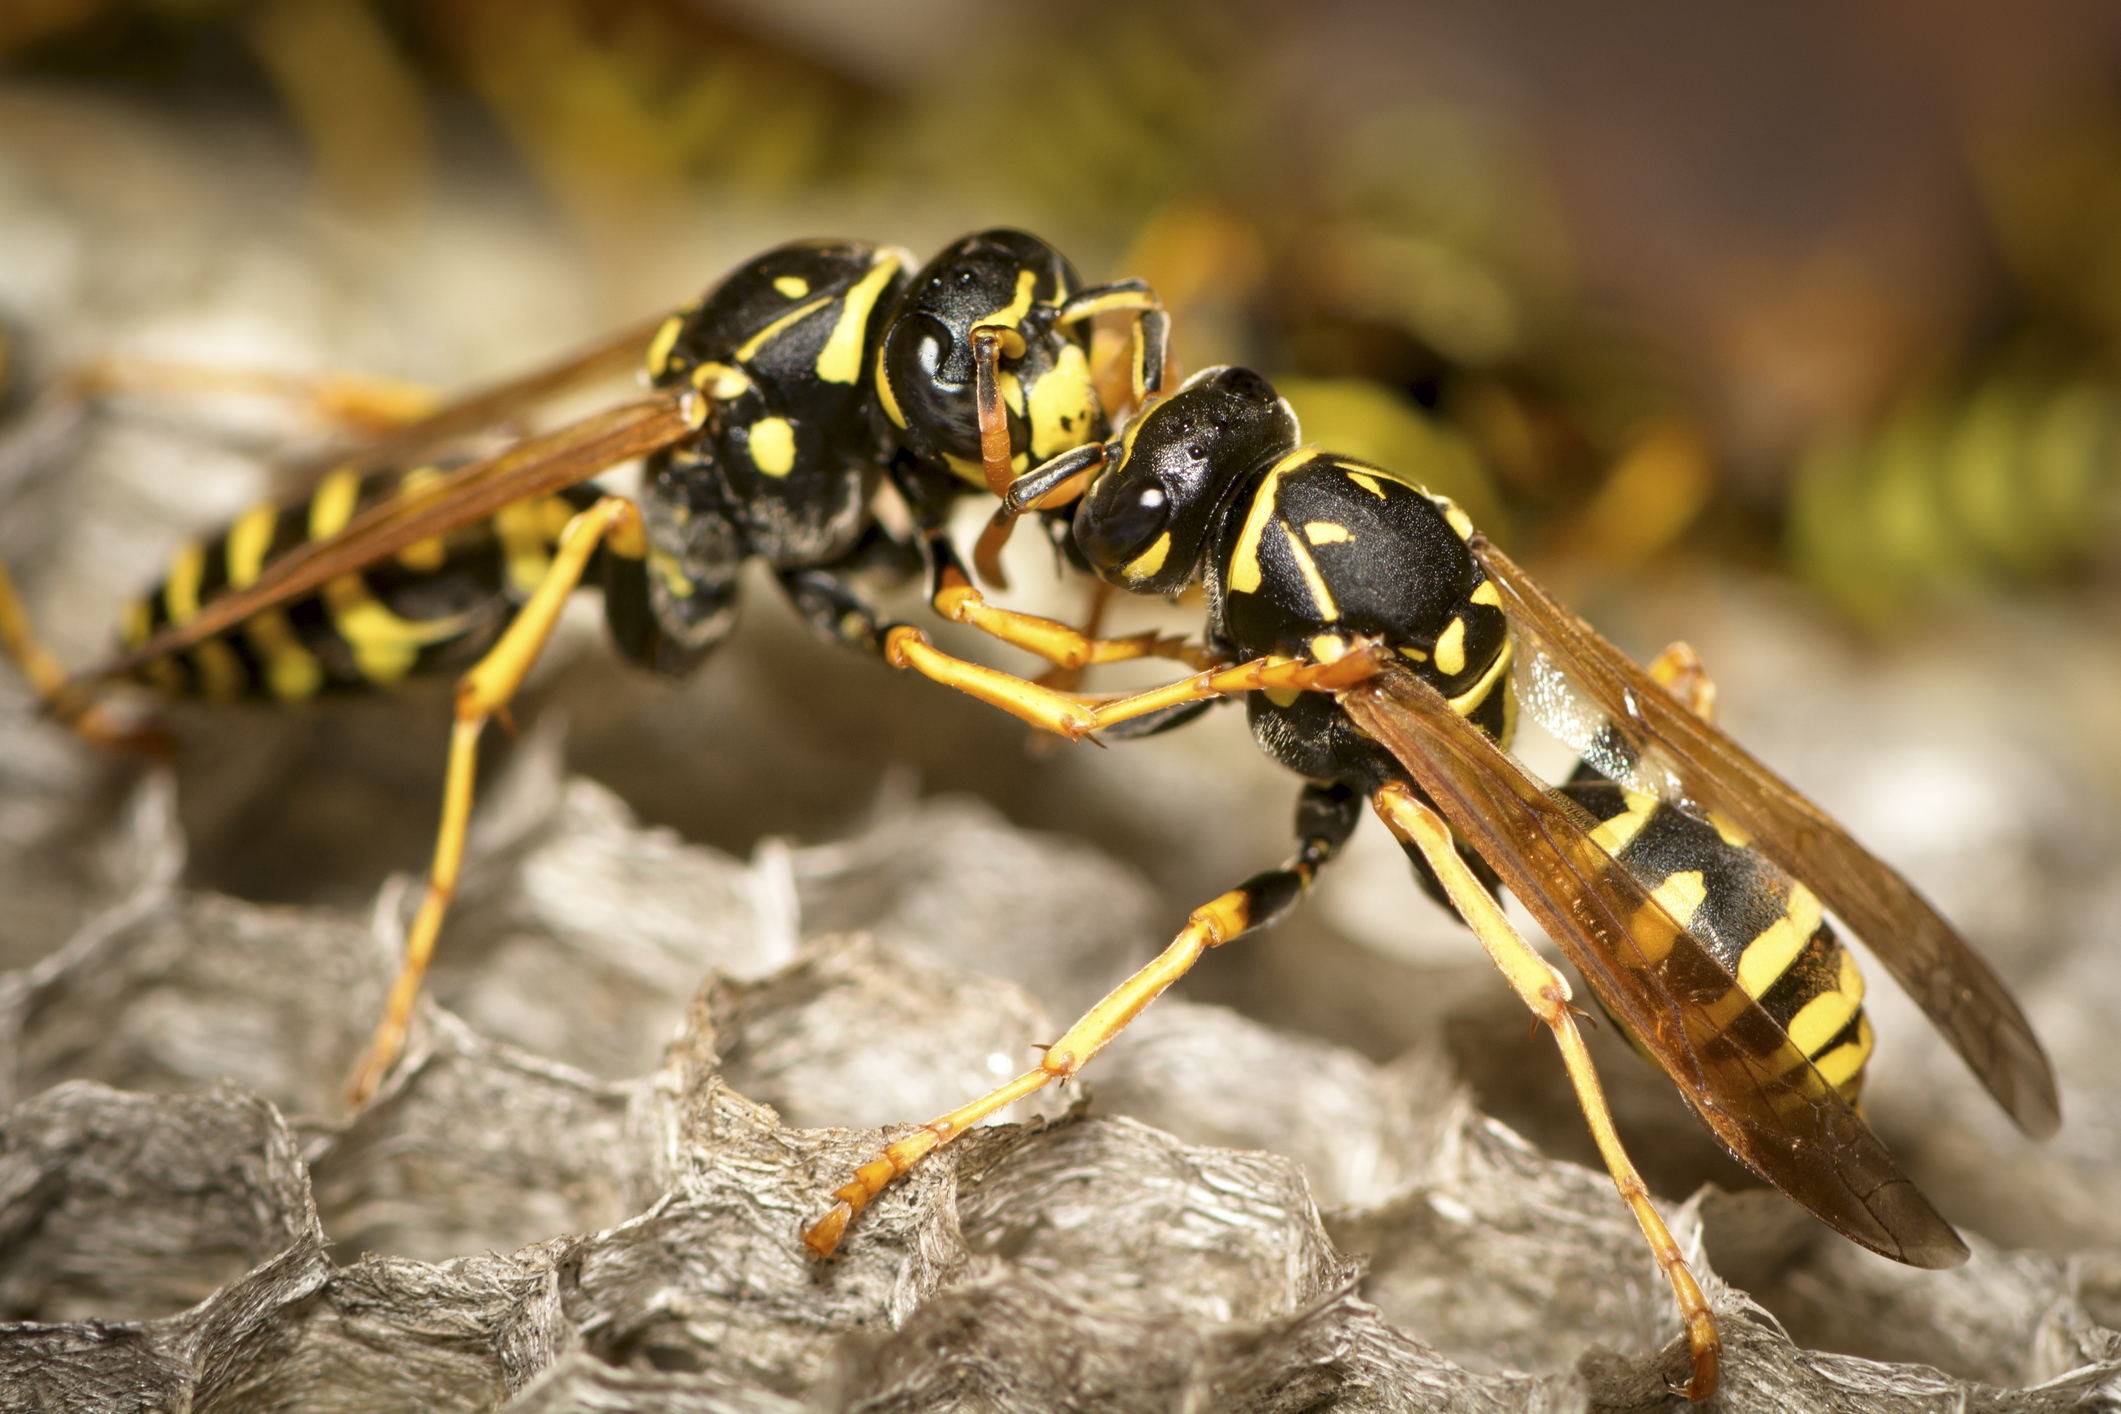 Yellowjacket Image 01